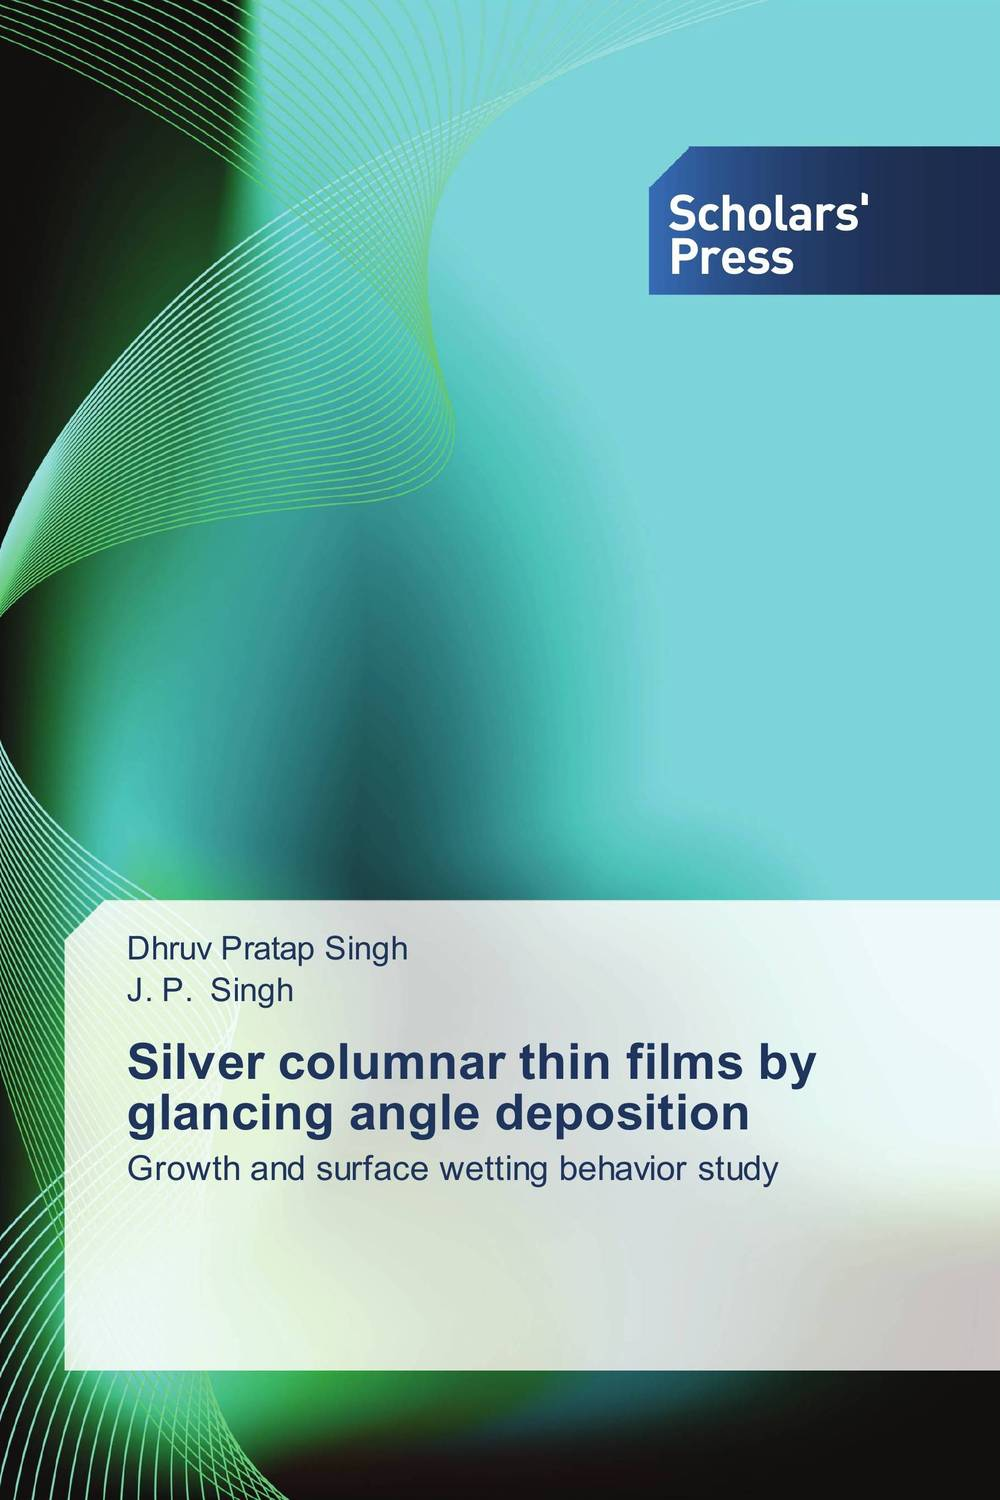 Silver columnar thin films by glancing angle deposition study of point defects in solids and thin films